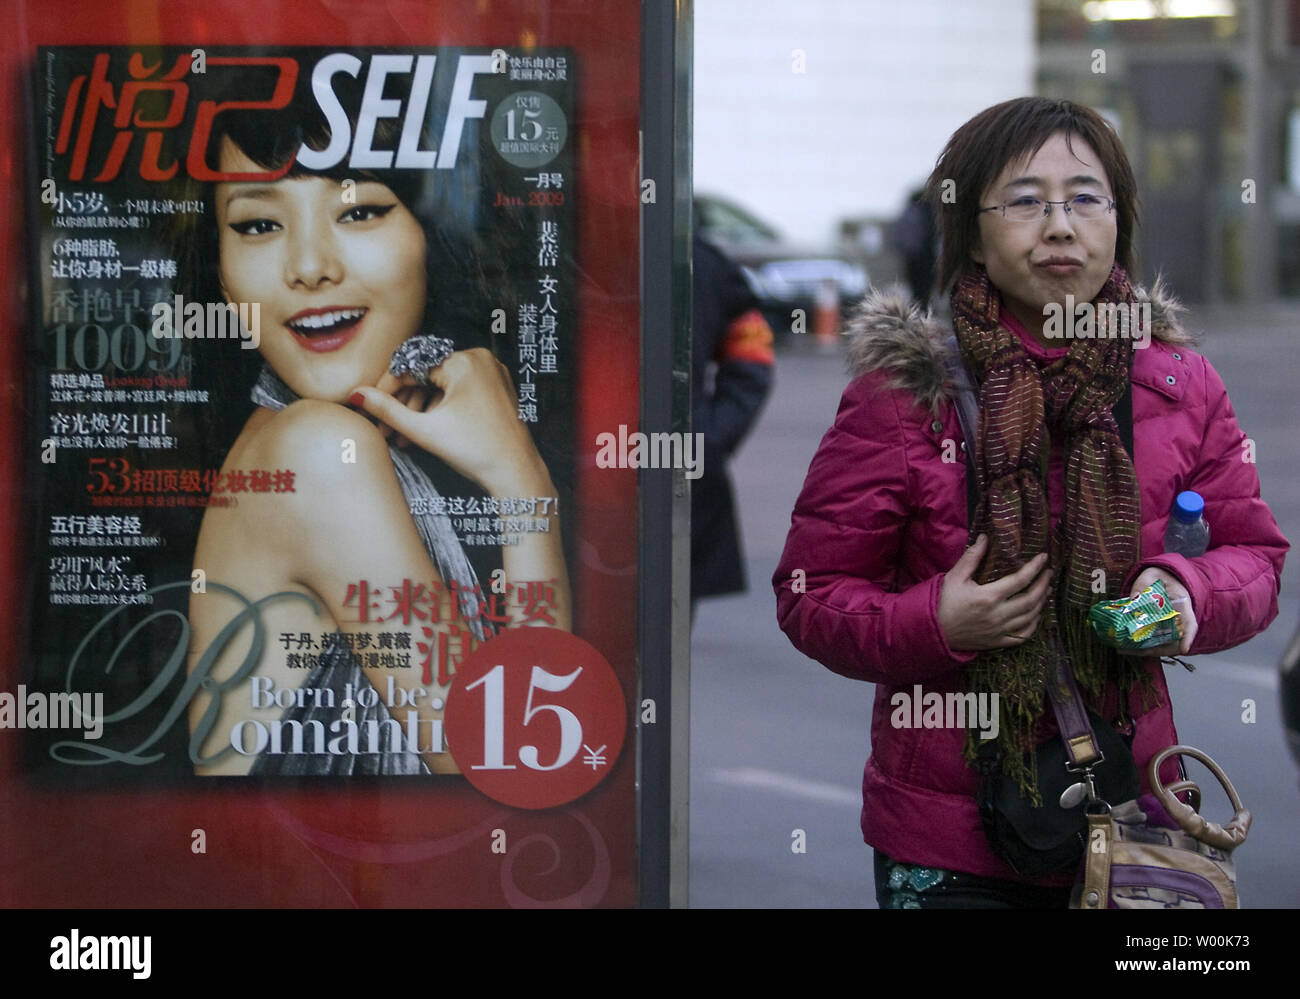 <h1>Approaches To Buy Chinese Brides</h1>